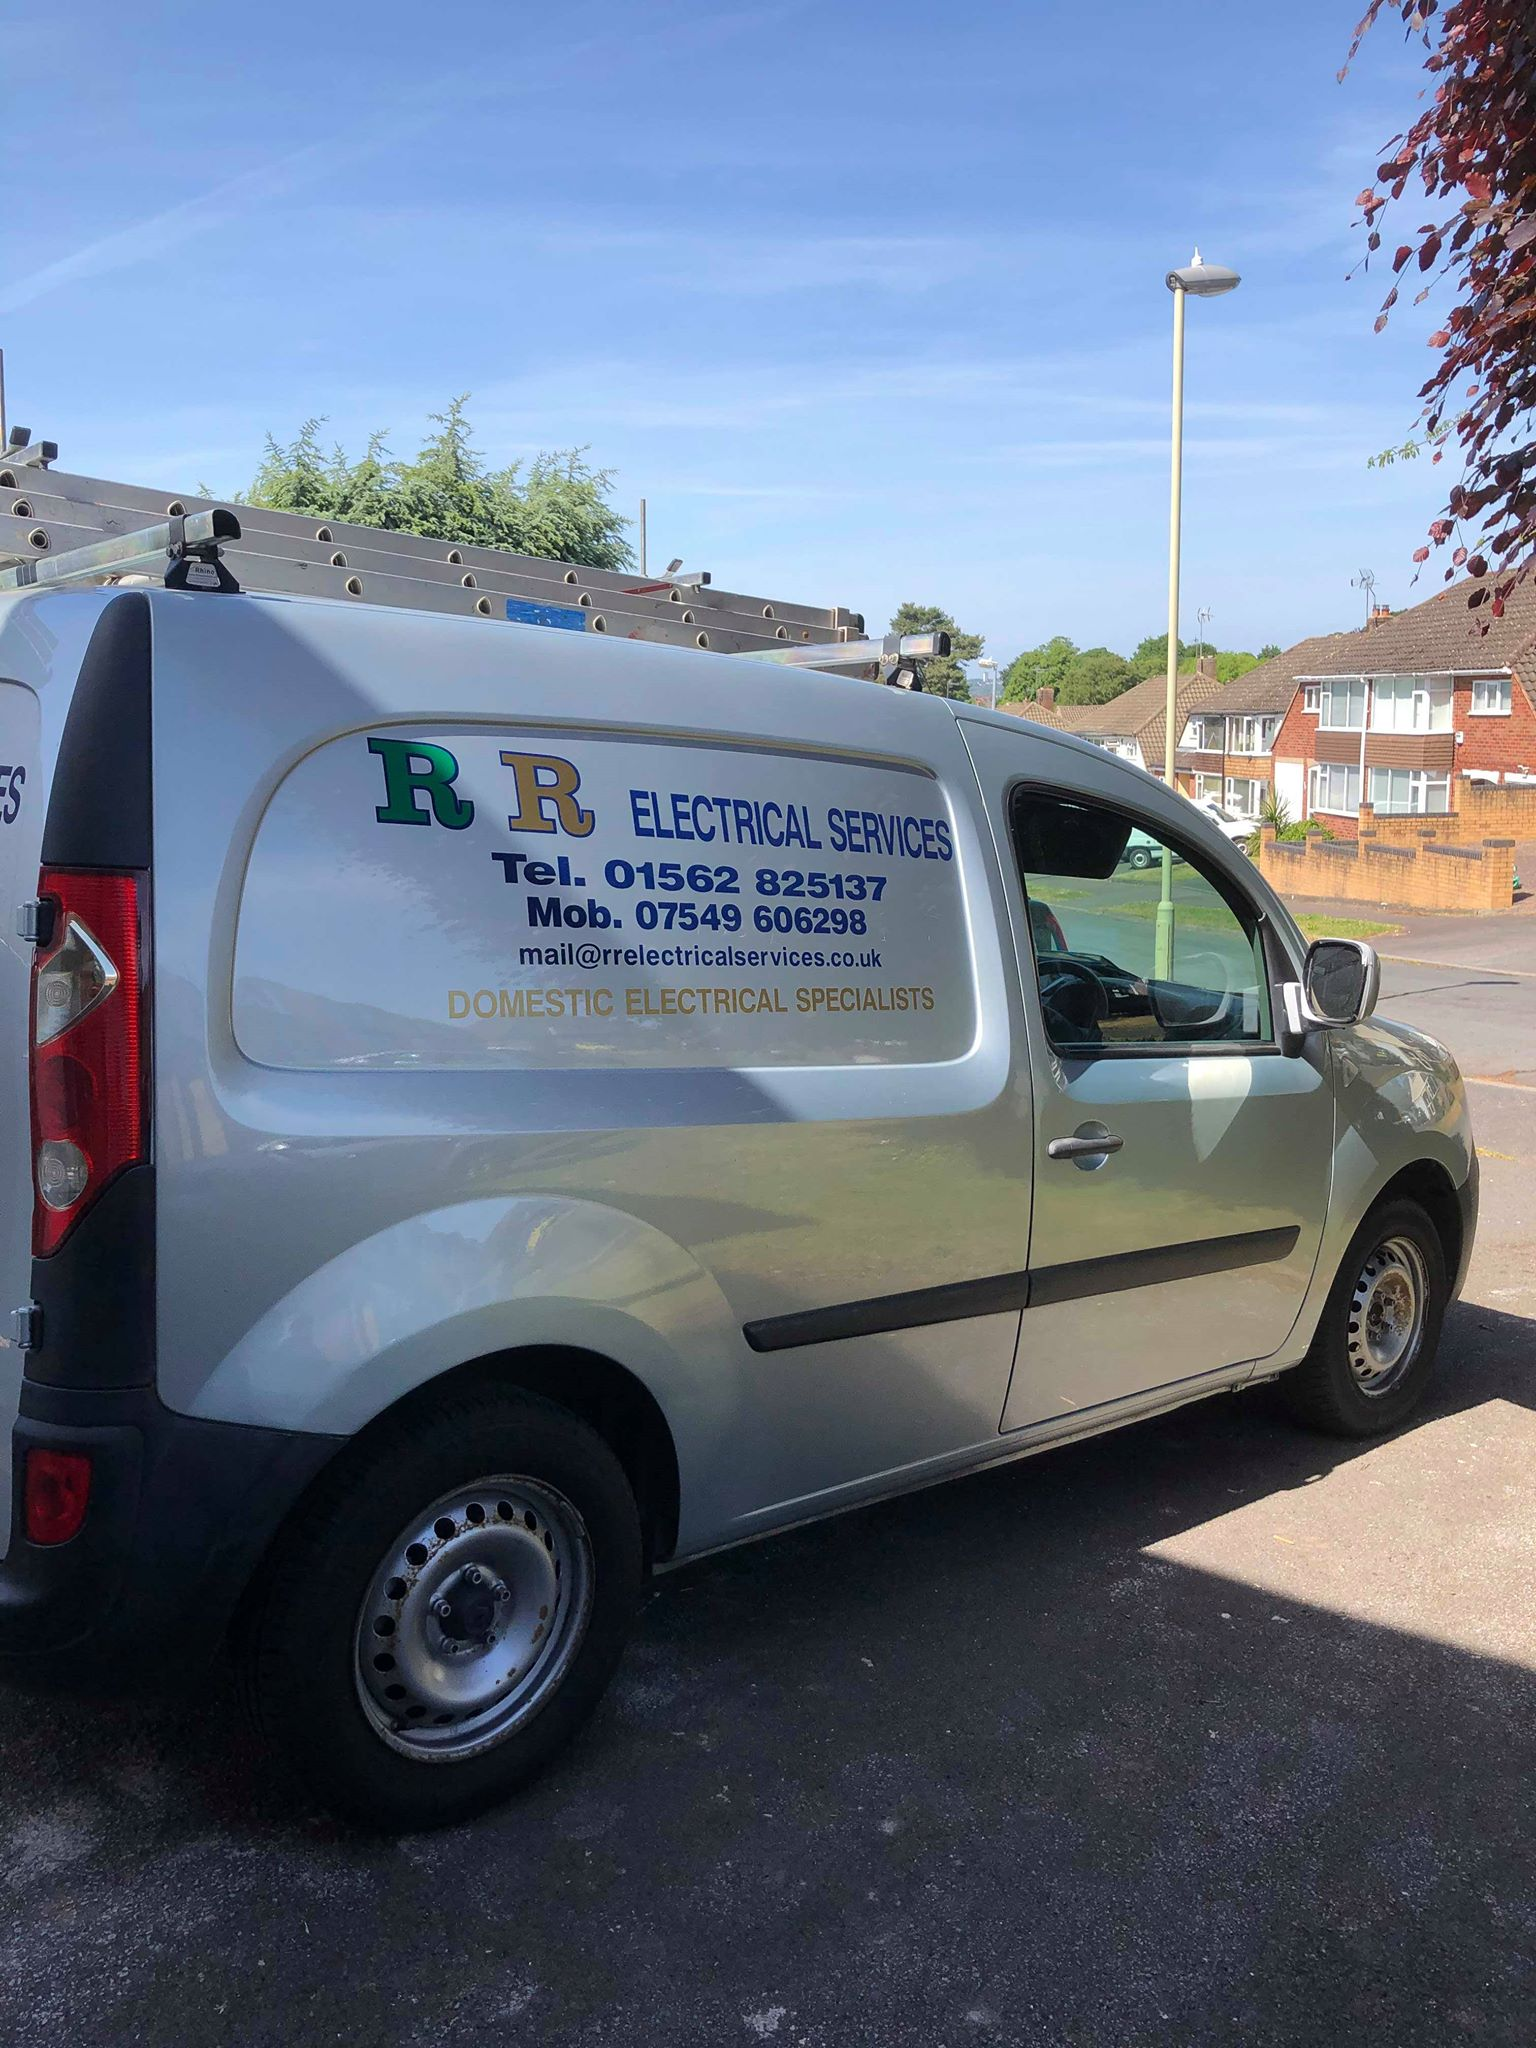 RR Electrical Services Van